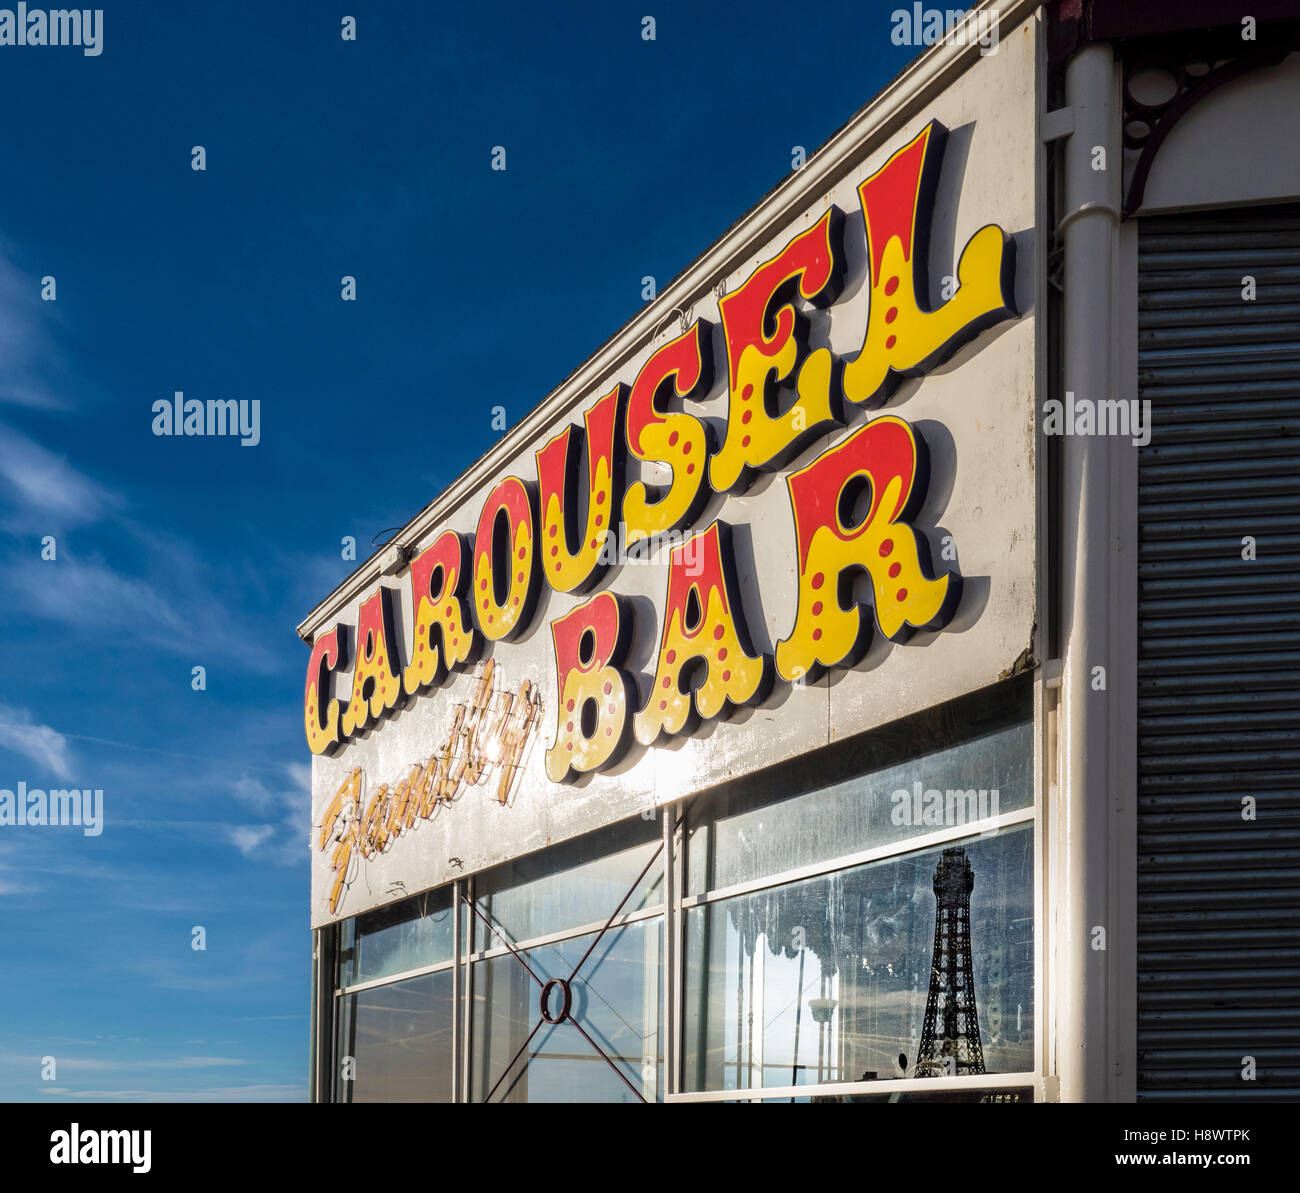 Carousel Family Bar sign on North Pier, Blackpool, Lancashire, UK. - Stock Image